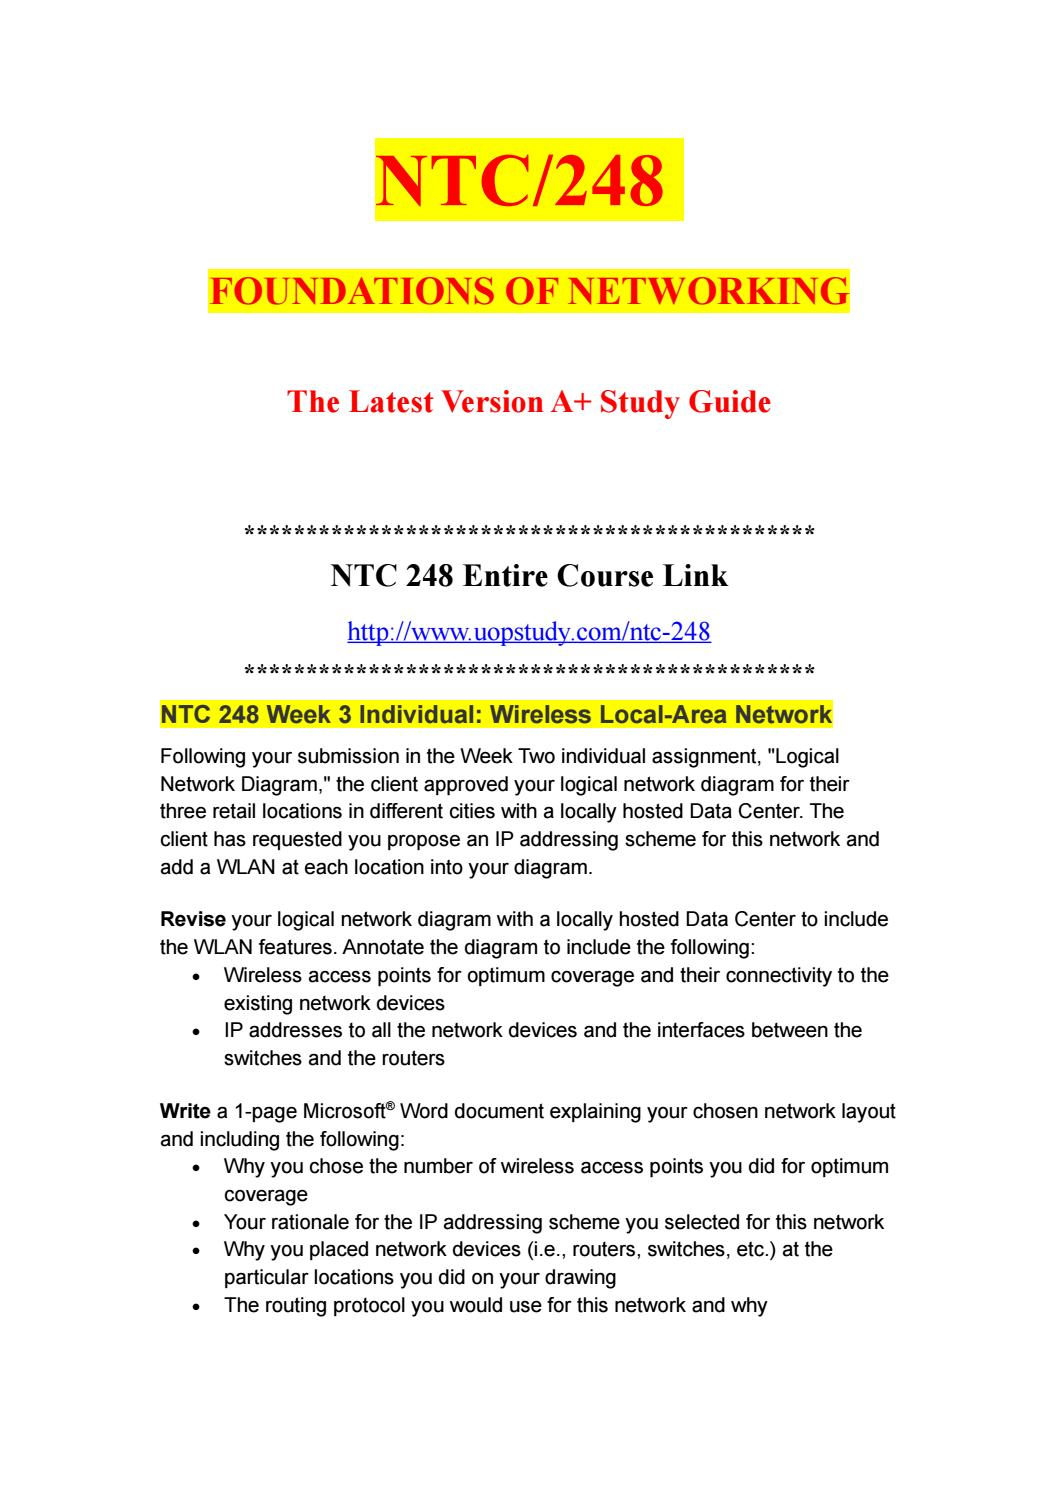 hight resolution of ntc 248 week 3 individual wireless local area network uopstudy com by uopx002 issuu